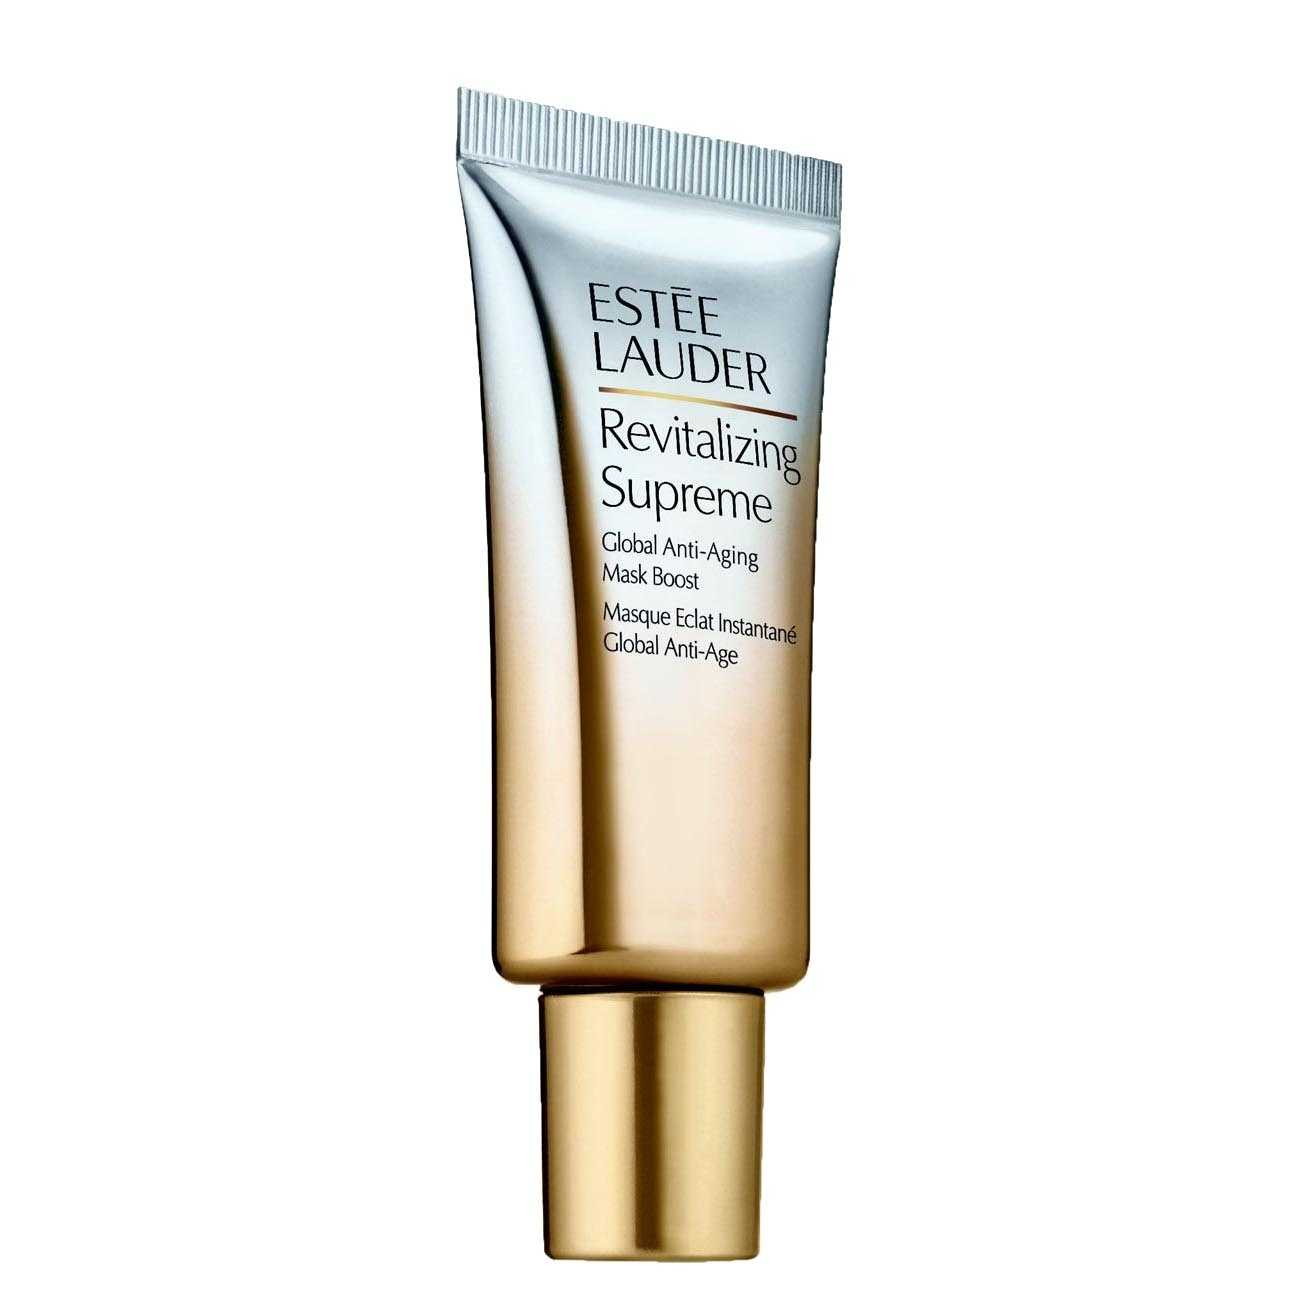 Revitalizing Supreme Global Anti-Aging Mask Boost 75 Ml Estée Lauder imagine 2021 bestvalue.eu